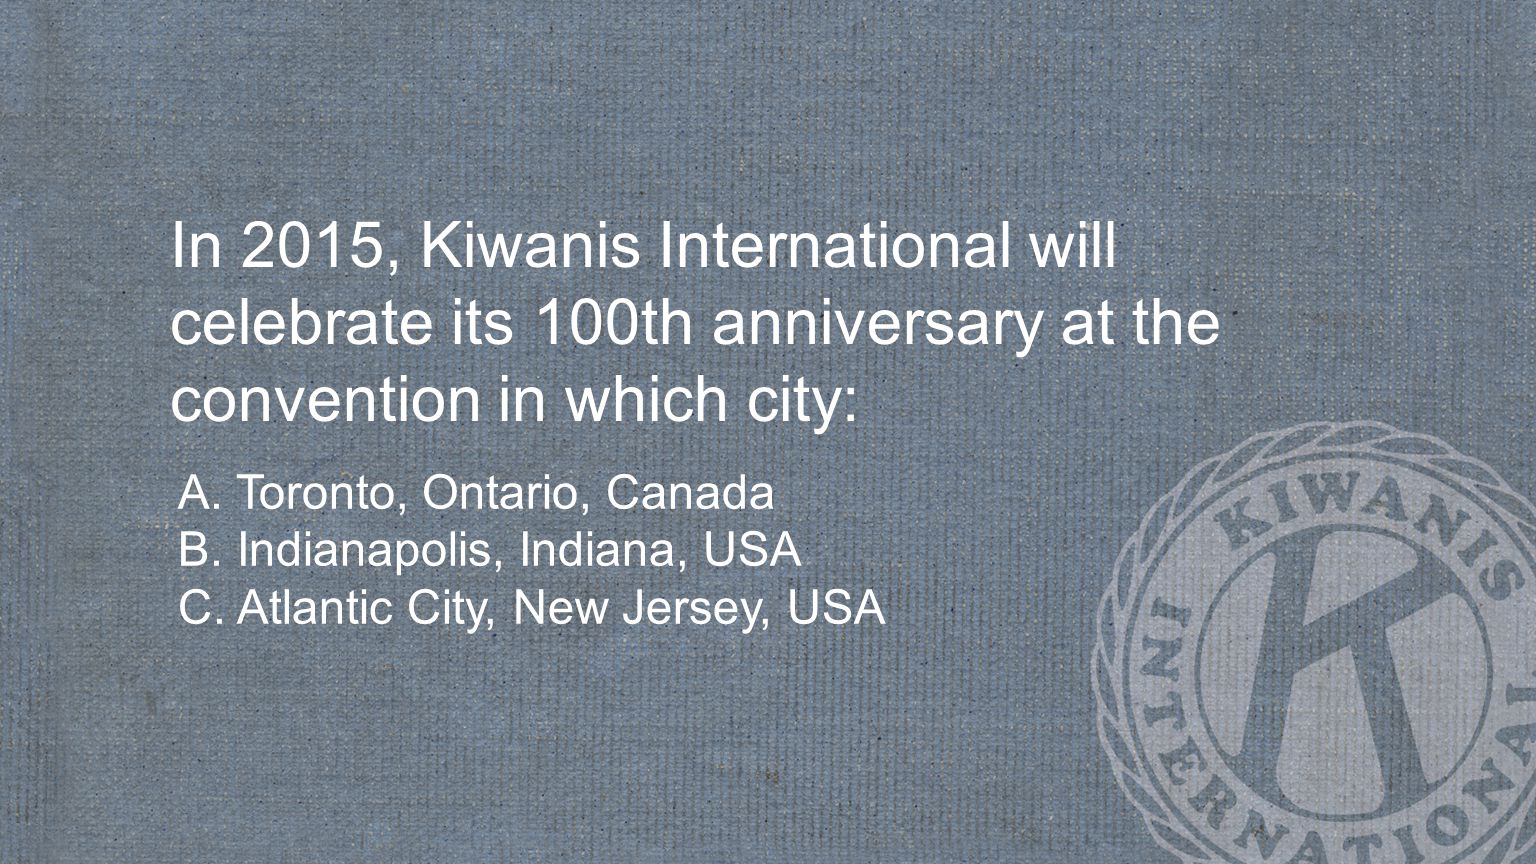 In 2015, Kiwanis International will celebrate its 100th anniversary at the convention in which city: